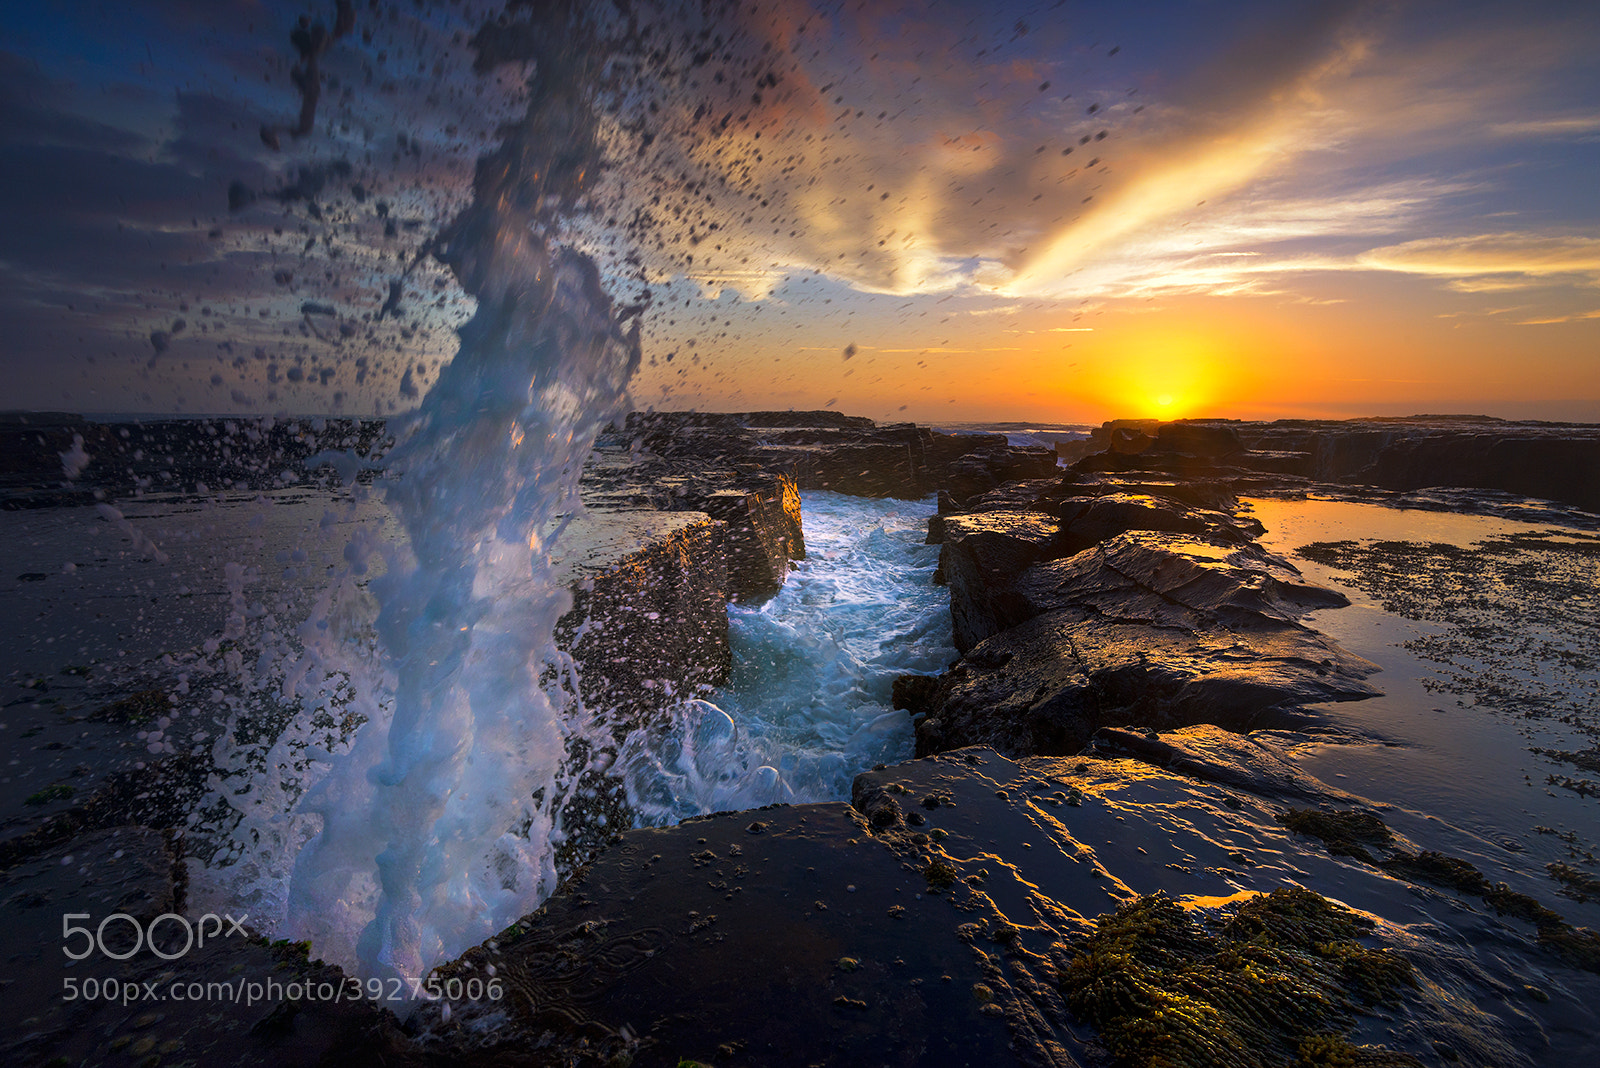 Photograph G' morning!! by Goff Kitsawad on 500px